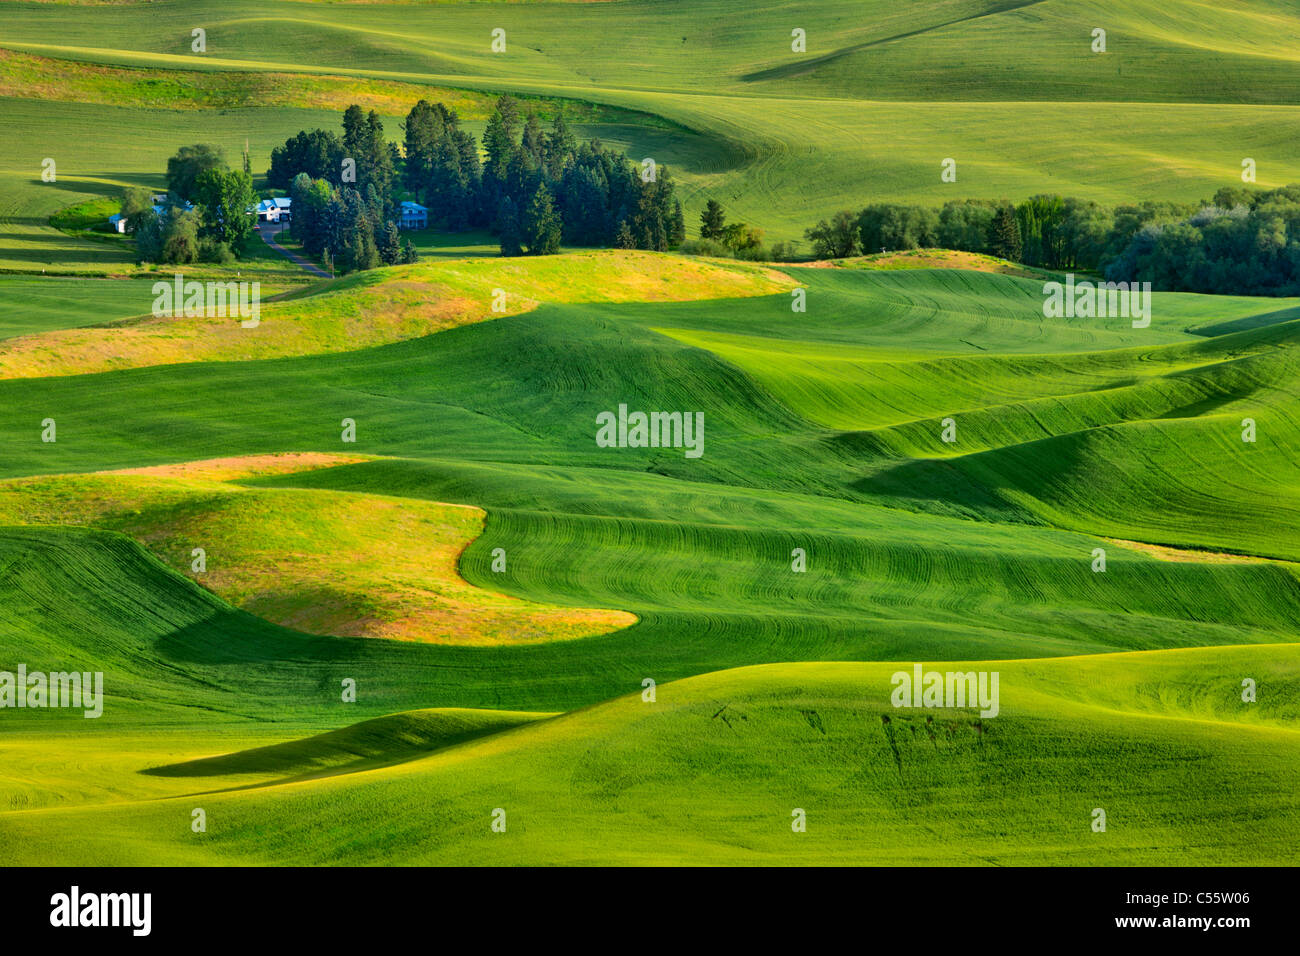 Portrait de champs verts, Steptoe Butte, Palouse, Washington State, USA Banque D'Images